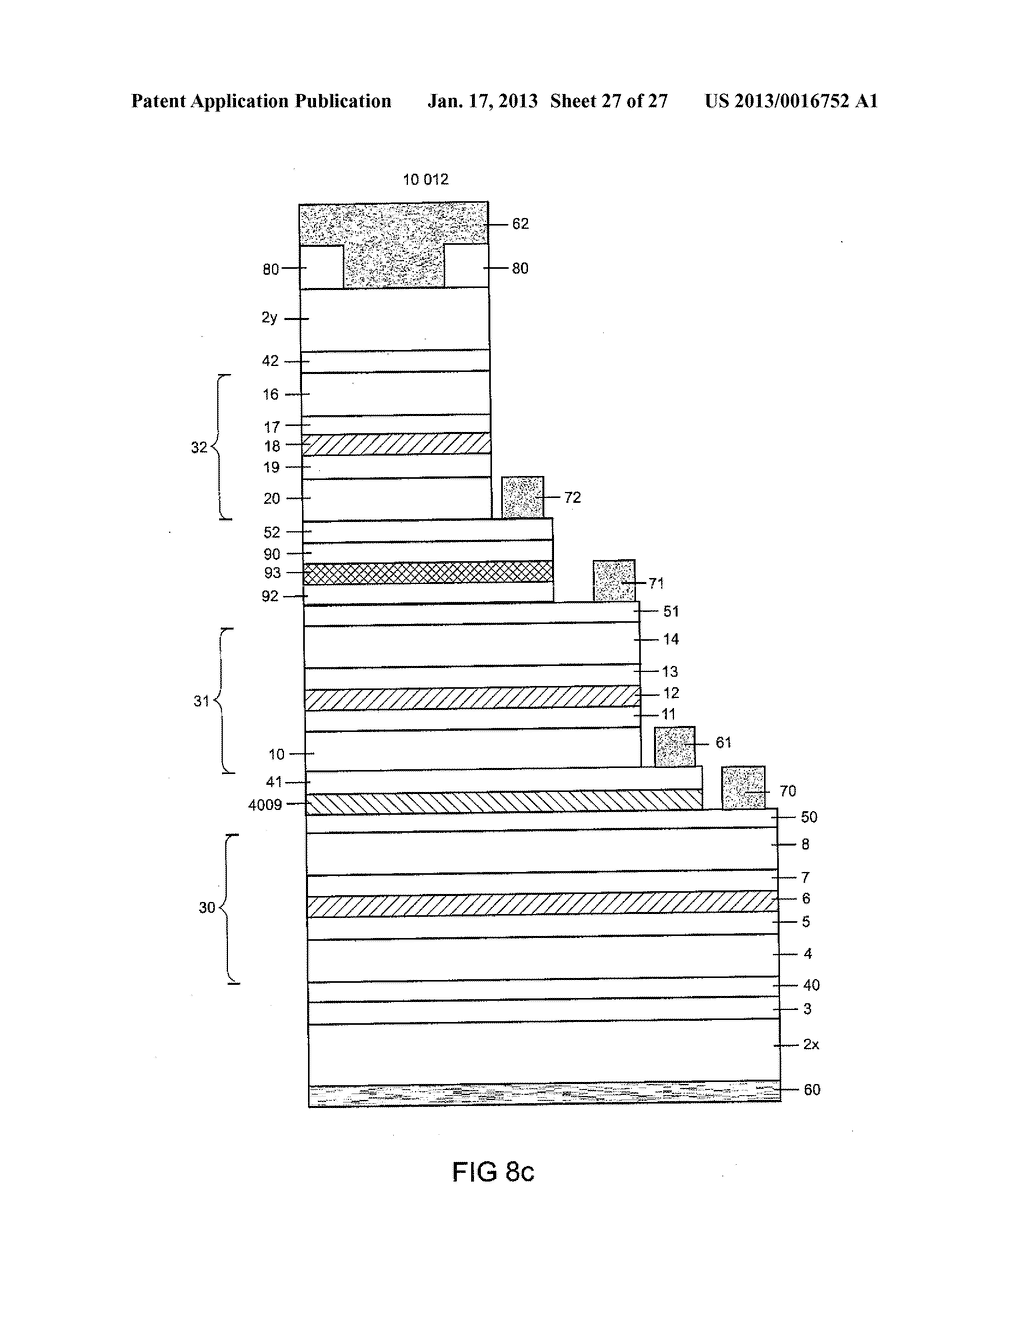 Laser Diode Assembly and Method for Producing a Laser Diode AssemblyAANM Lell; AlfredAACI Maxhutte-HaidhofAACO DEAAGP Lell; Alfred Maxhutte-Haidhof DEAANM Straussburg; MartinAACI DonaustaufAACO DEAAGP Straussburg; Martin Donaustauf DE - diagram, schematic, and image 28